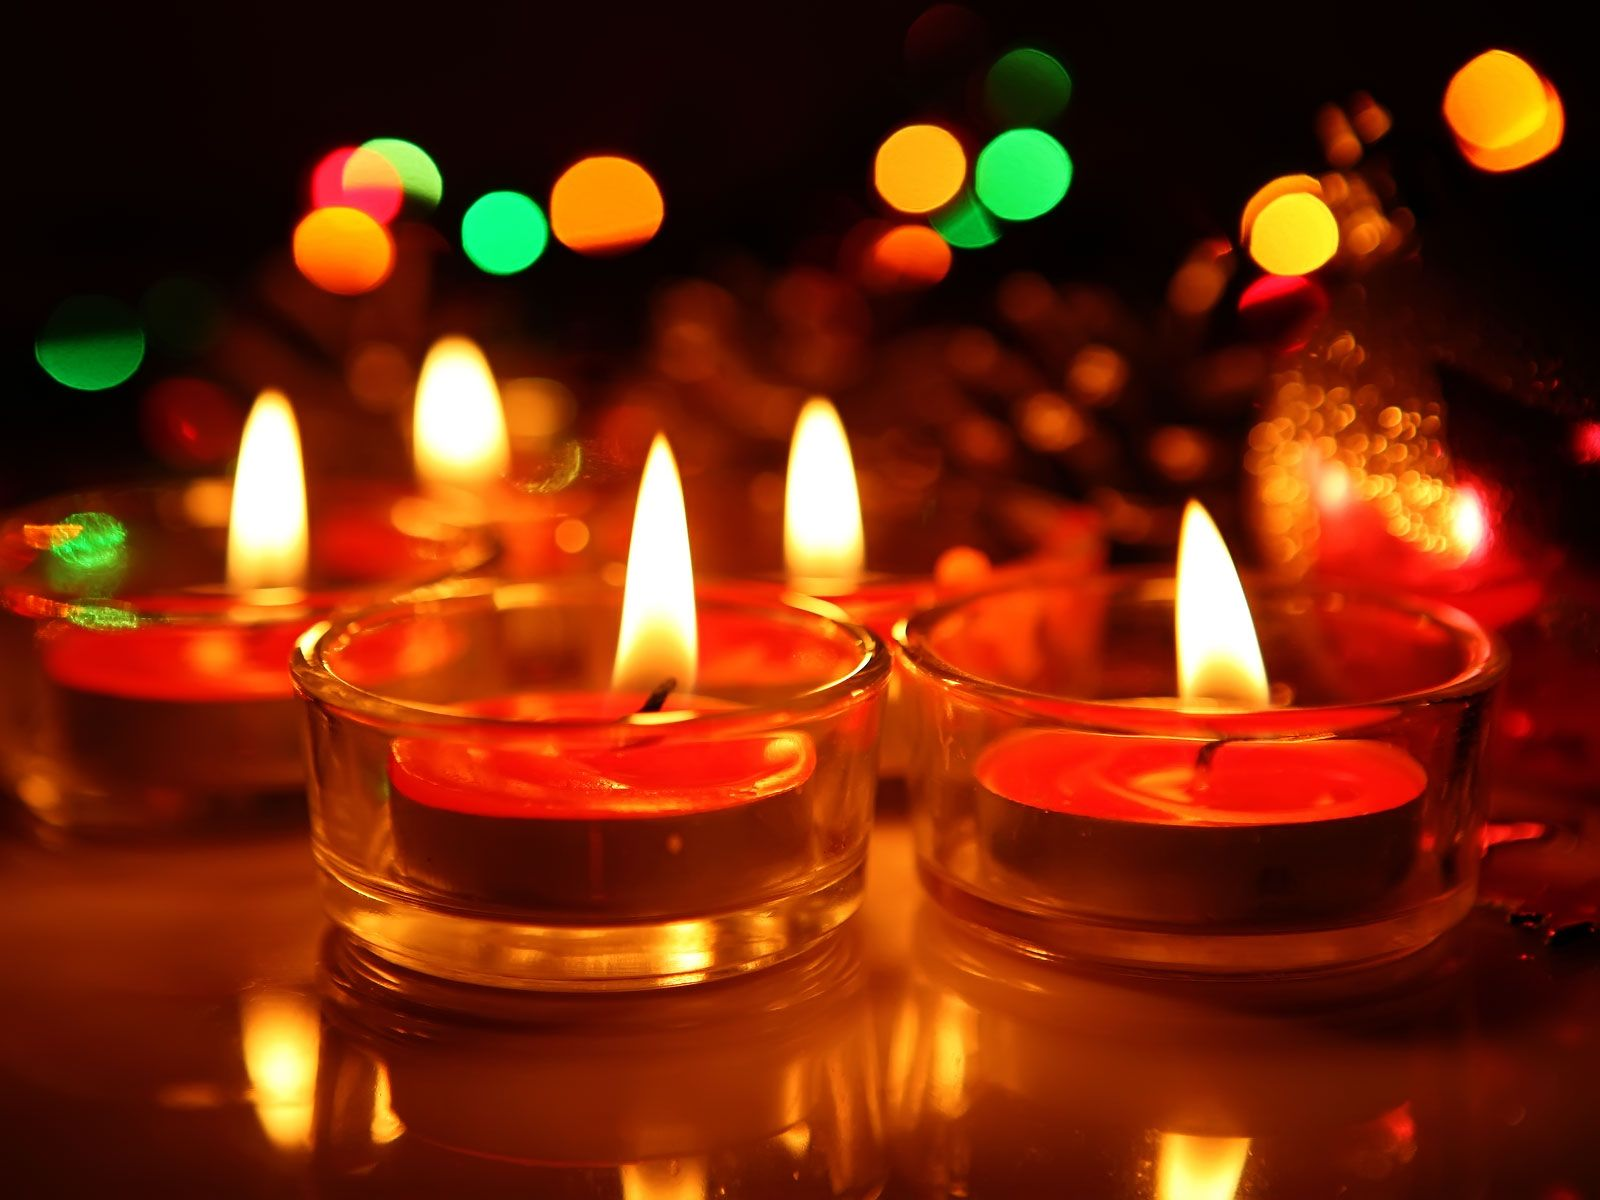 Happy diwali sms messages wishes hd images pictures whatsapp diwali kristyandbryce Gallery